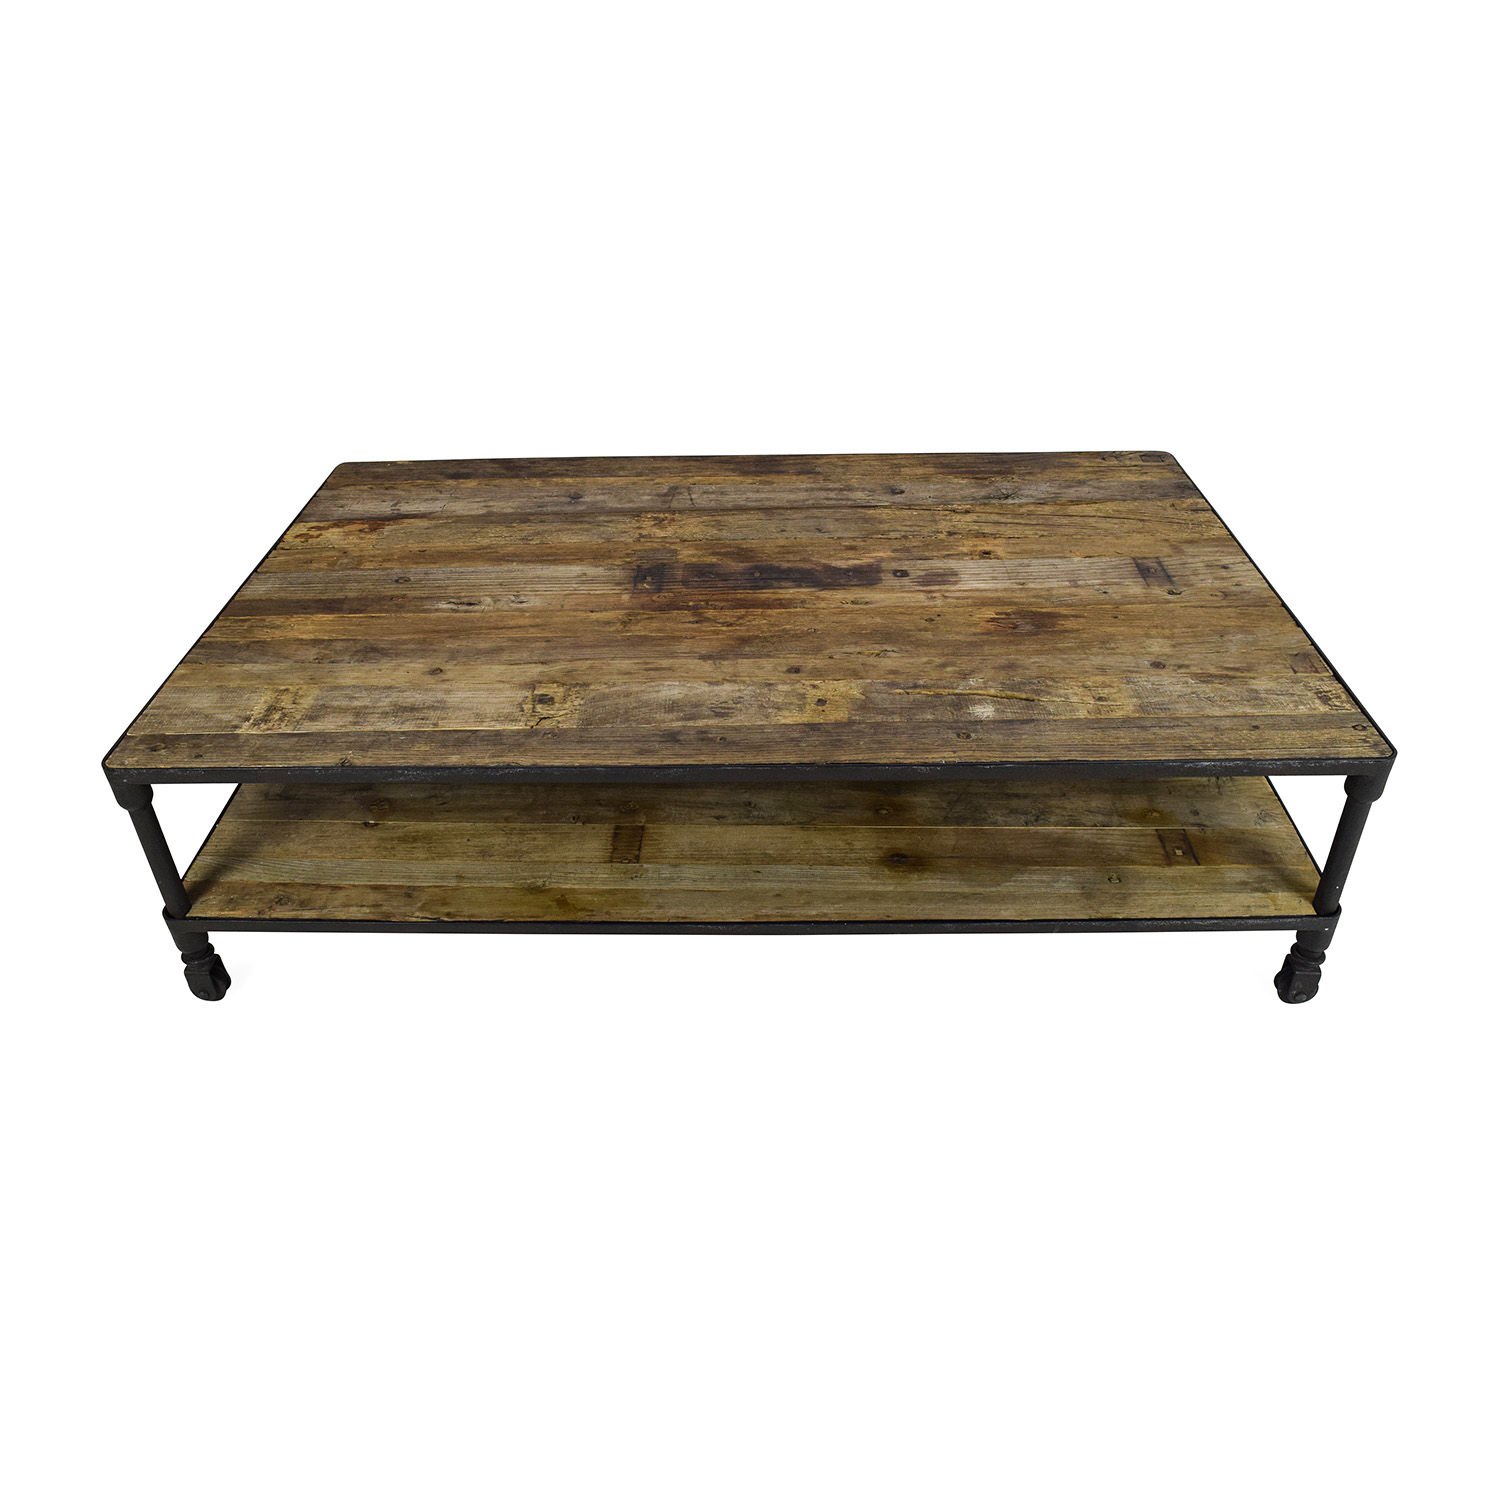 Restoration Hardware Restoration Hardware Oversized Coffee Table for sale